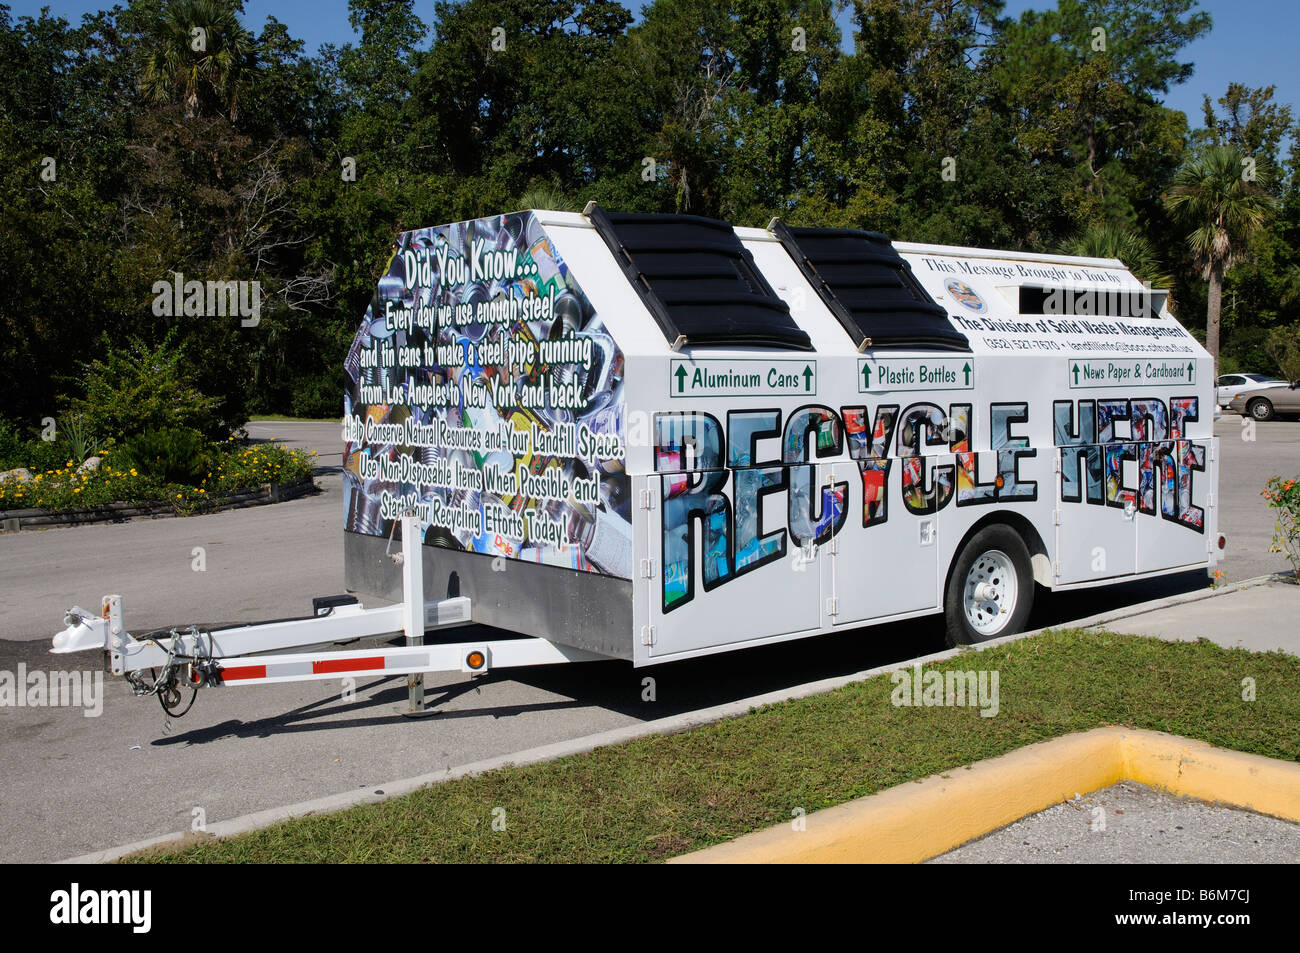 Mobile recycling trailer unit for metal cans bottles and paper stock photo royalty free image - Recycling mobel ...